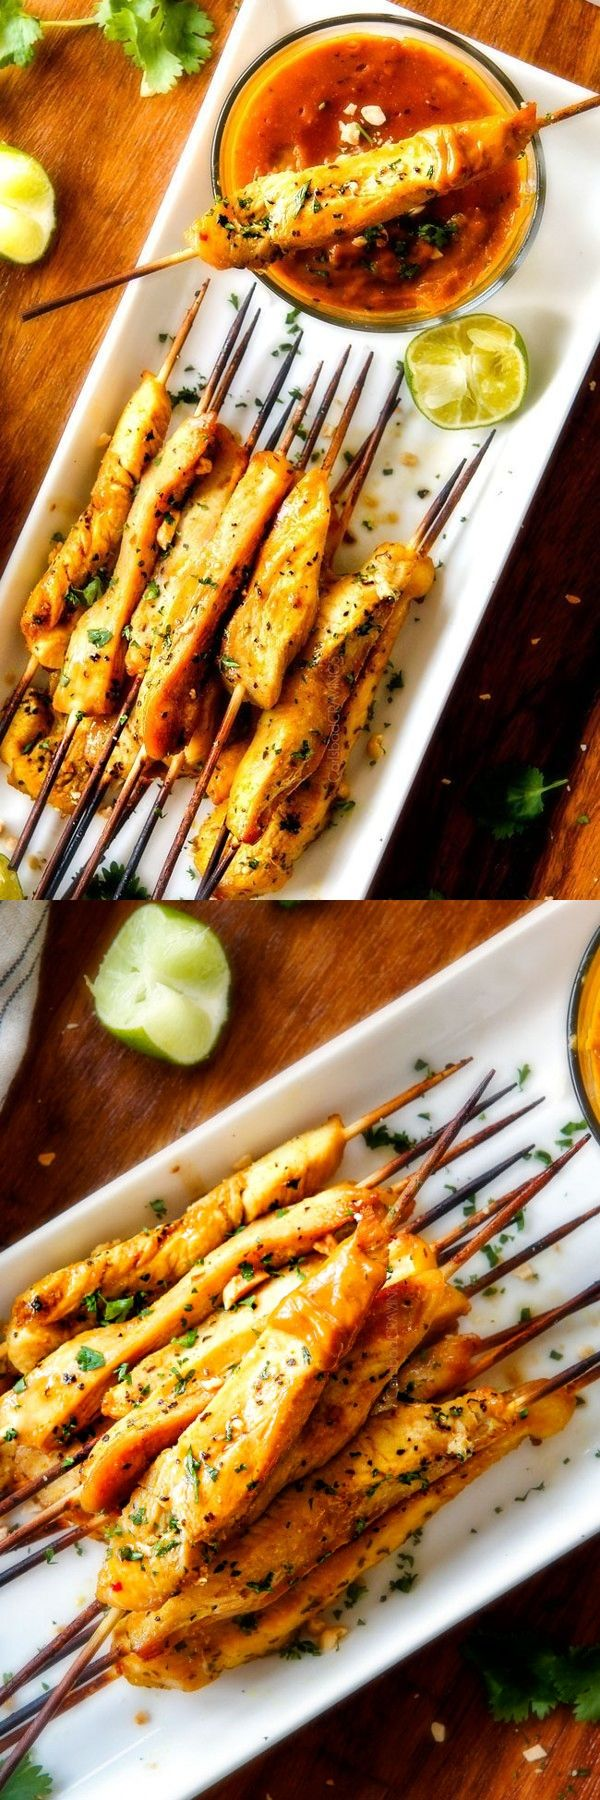 Thai Chicken Satay with Peanut Sauce (baked or grilled!